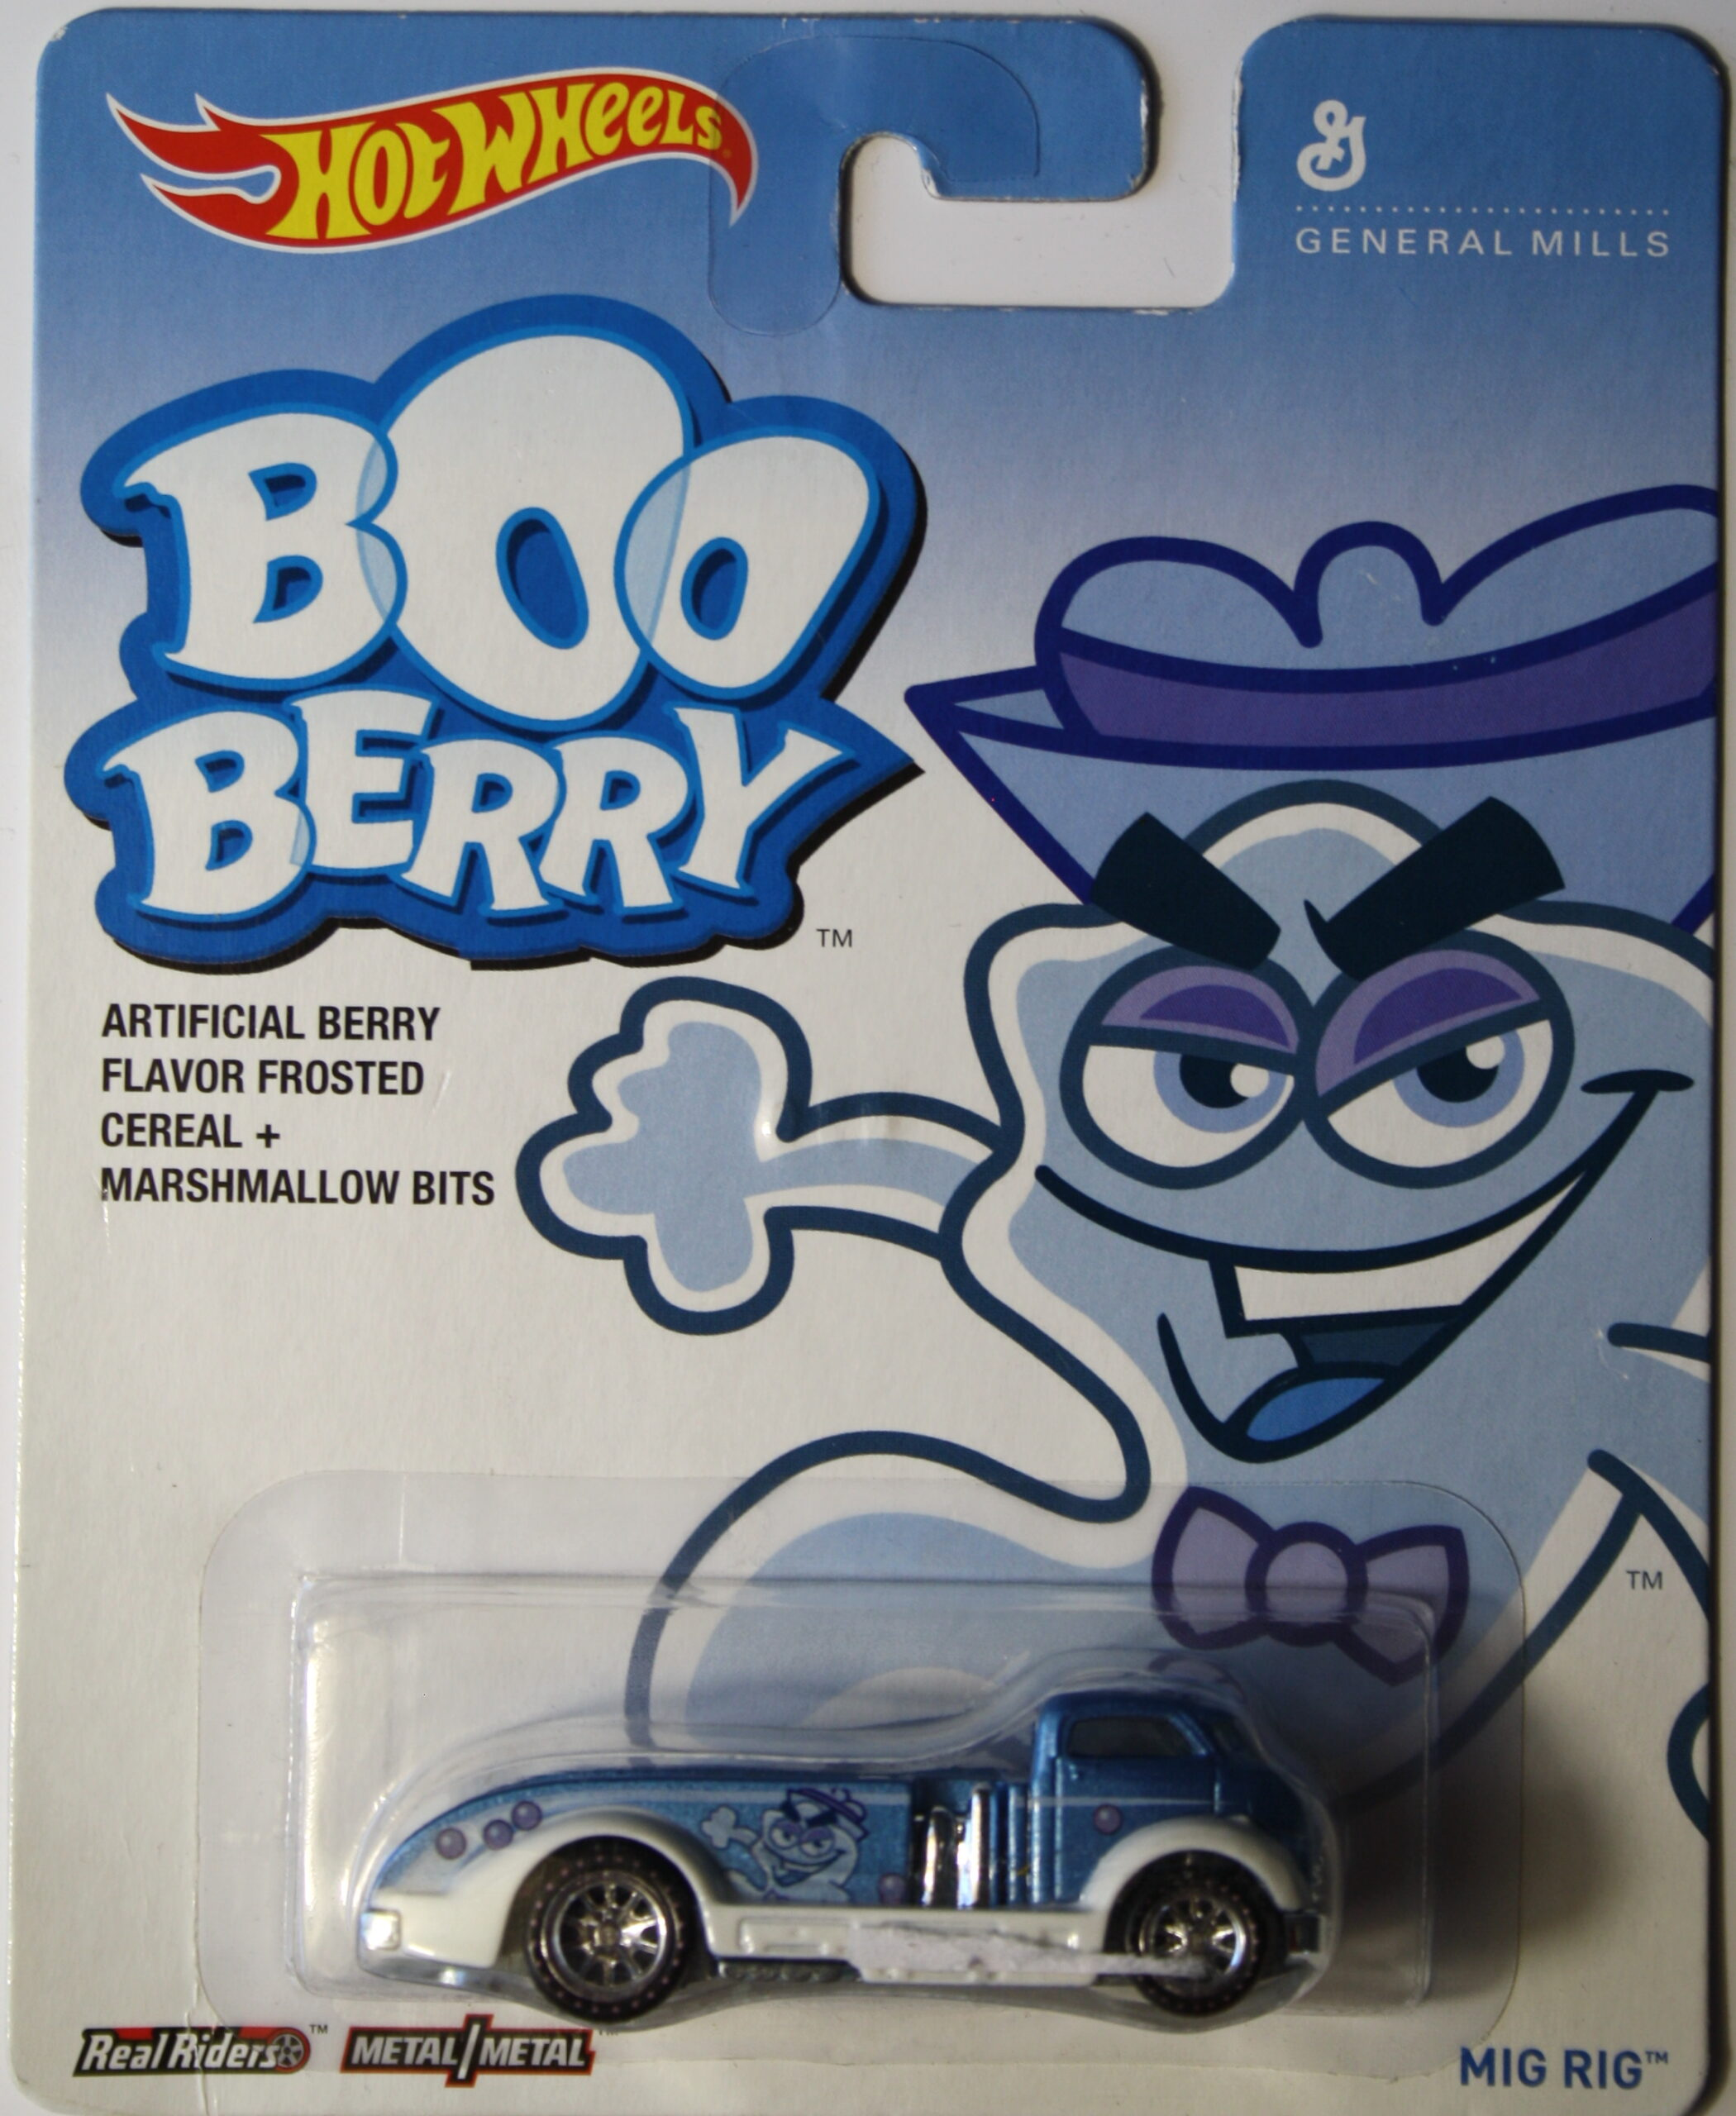 Hot Wheels Mig Rig Boo Berry Real Riders